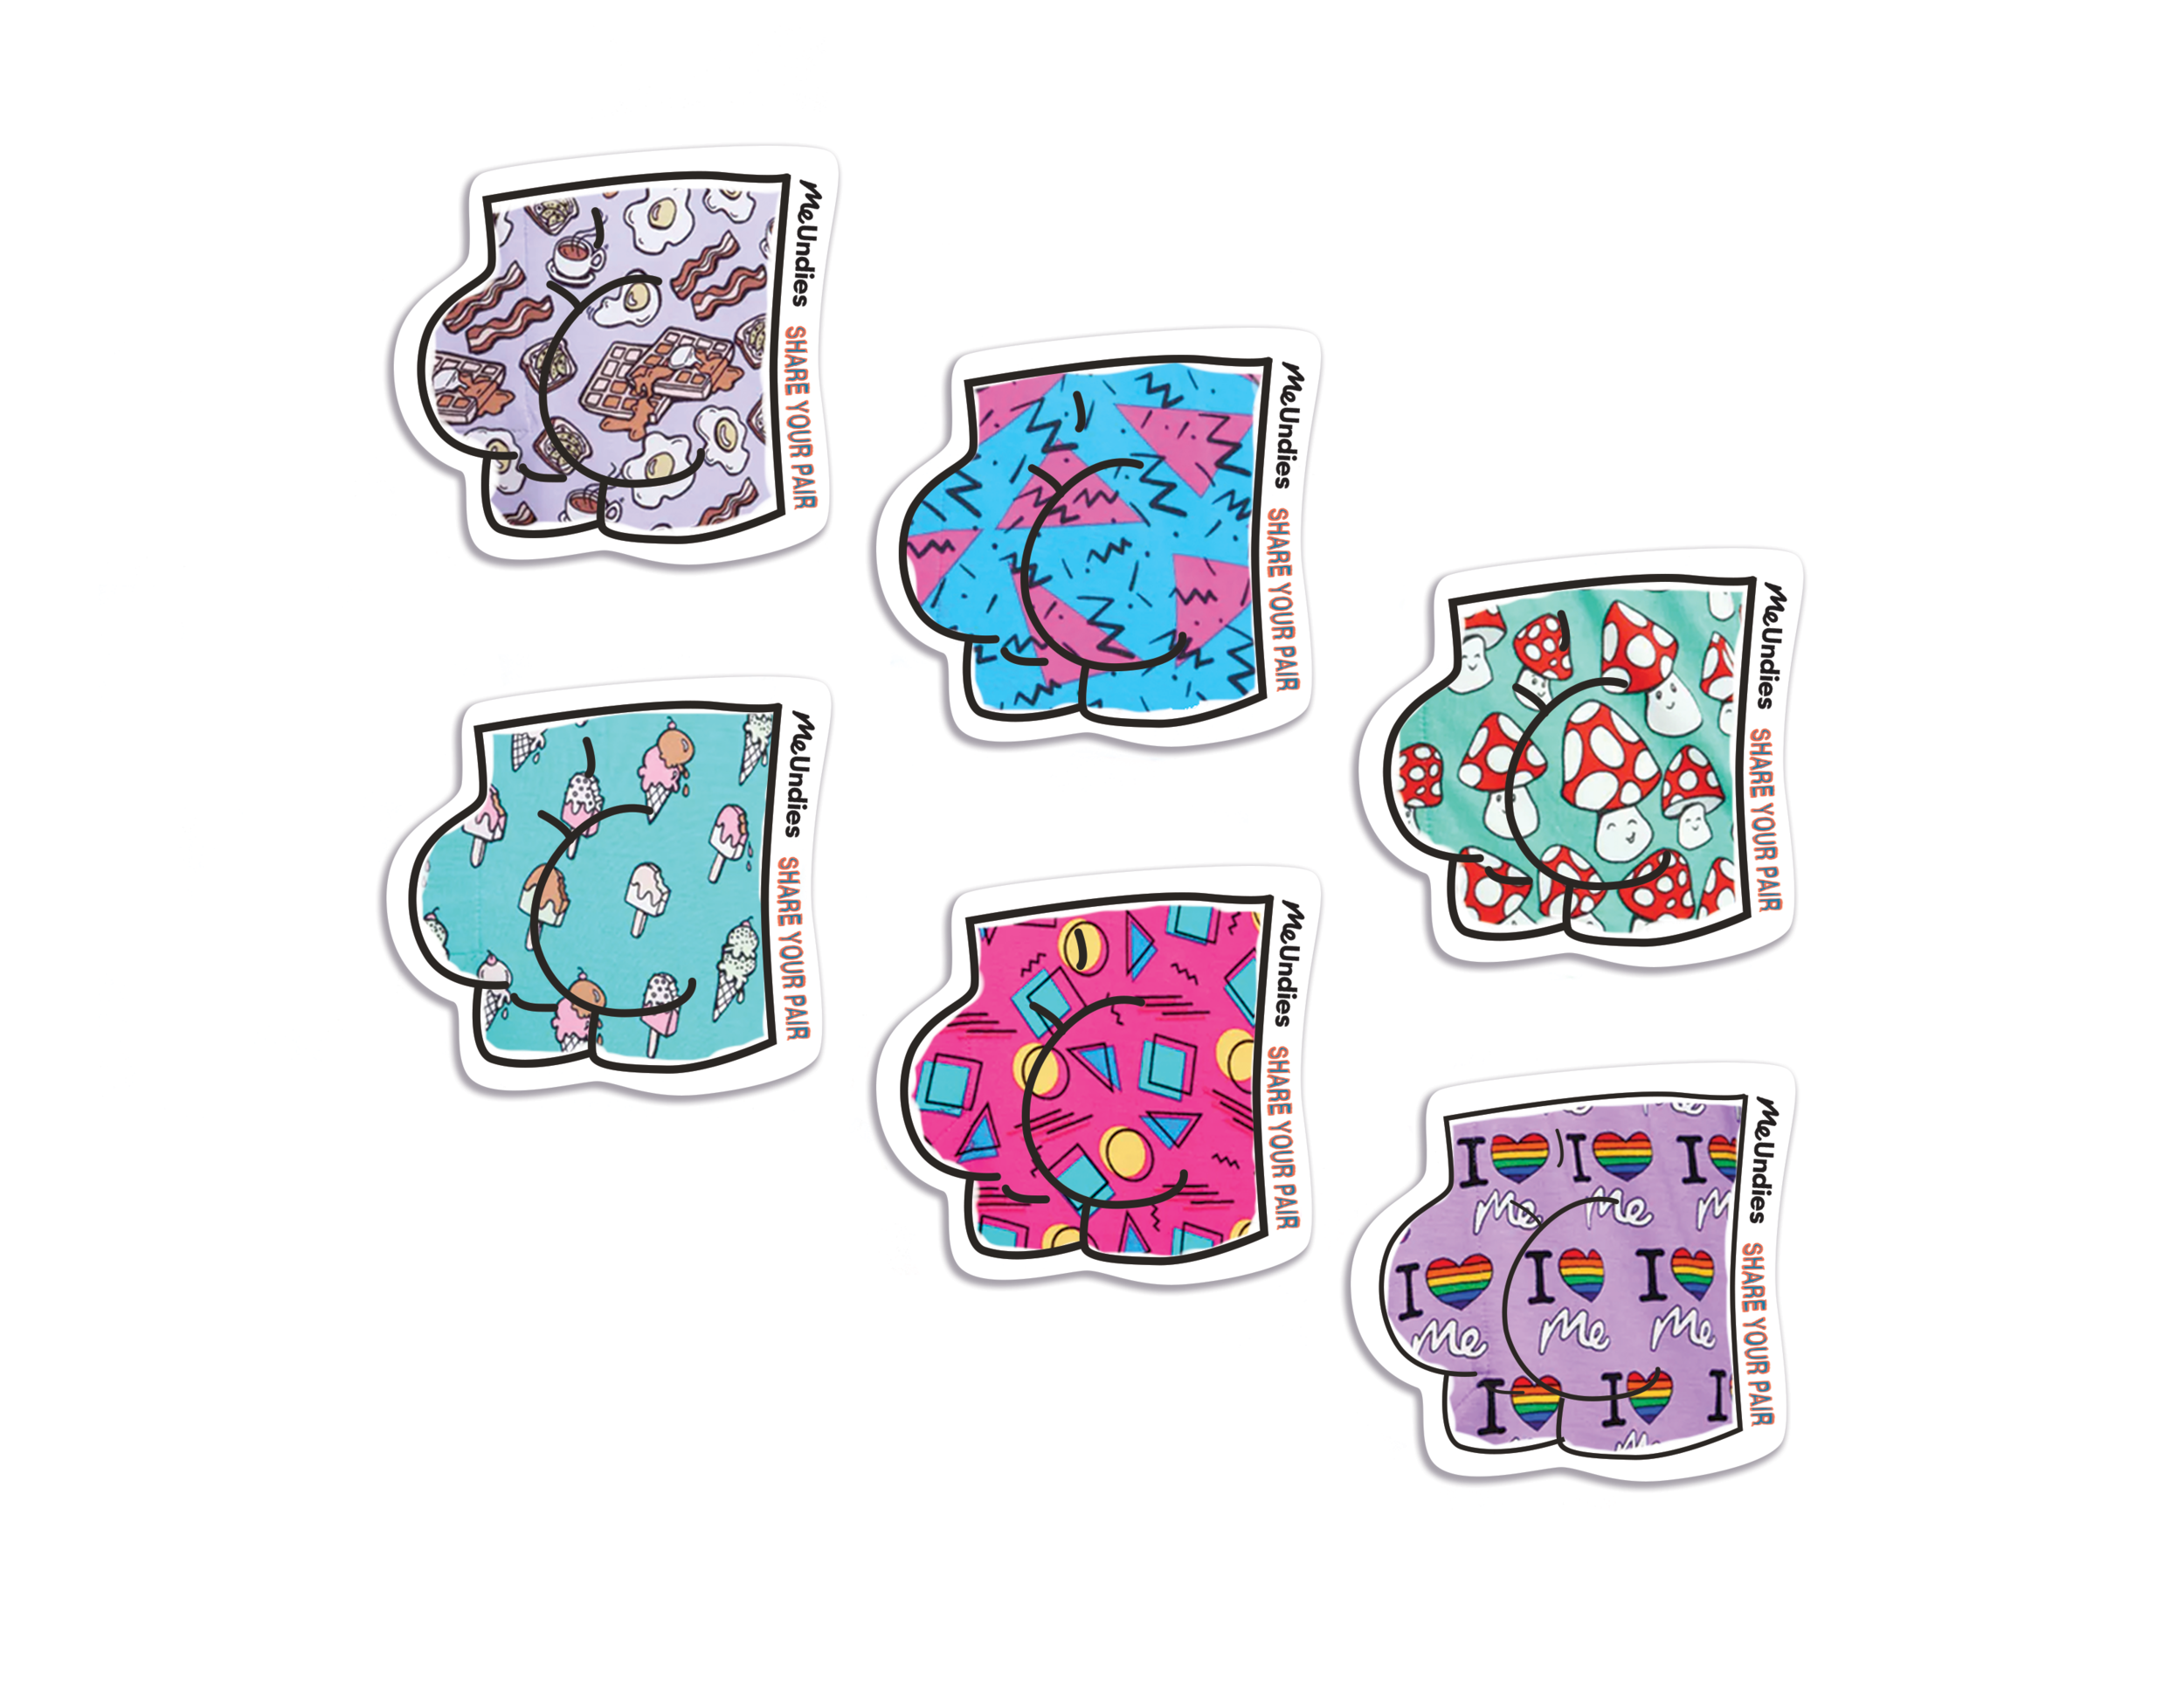 Stickers will come with orders mirroring the designs they ordered.